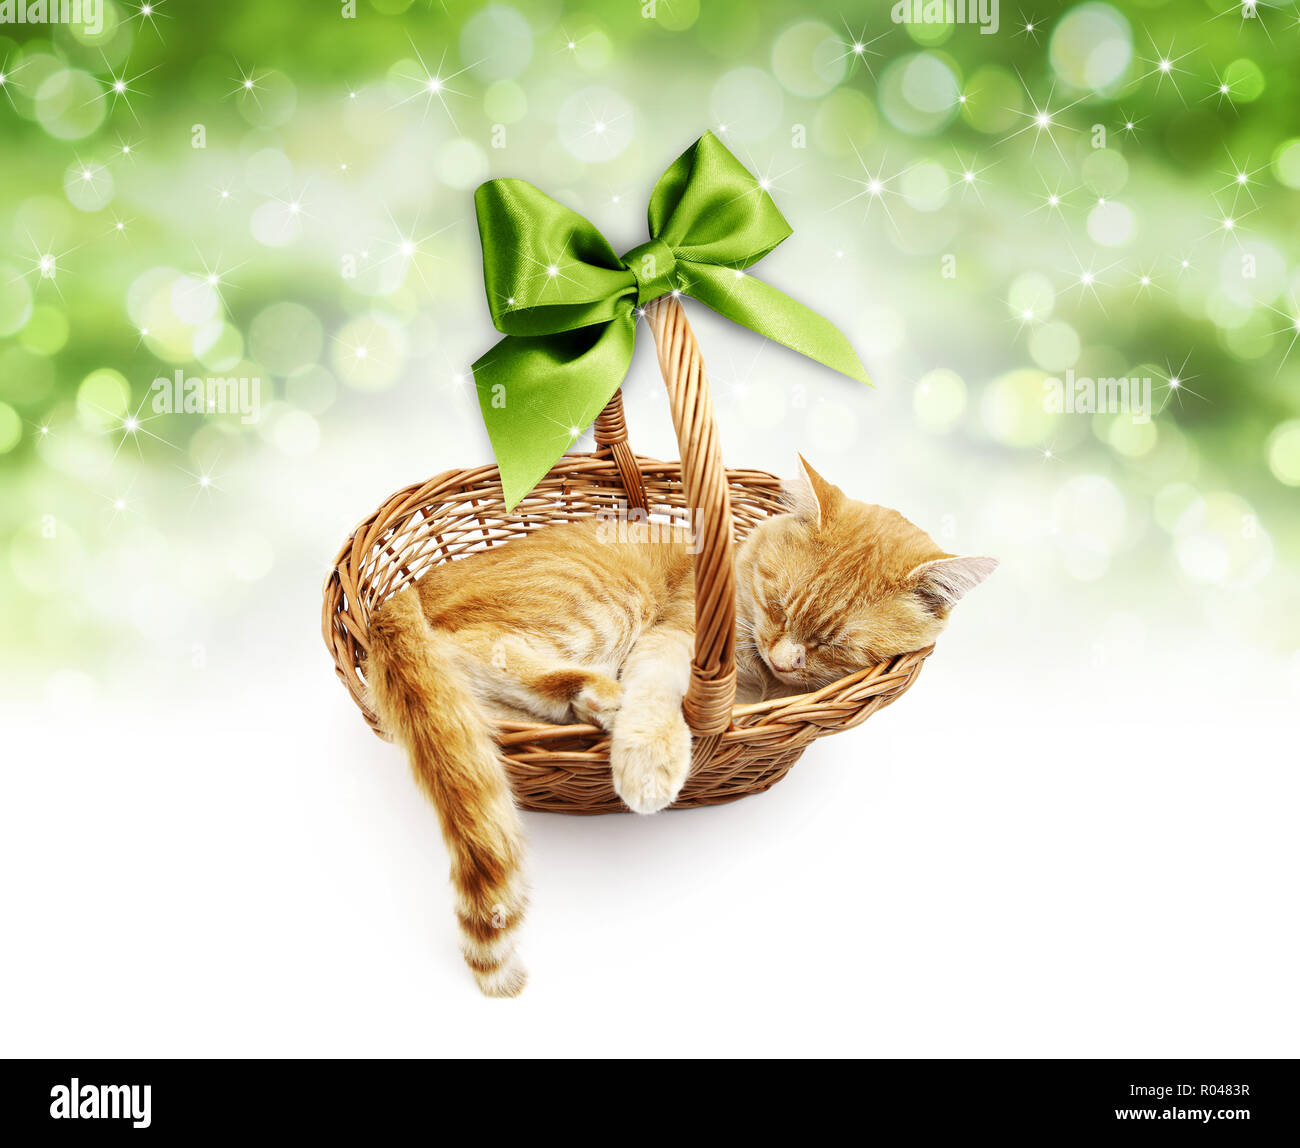 greeting or gift card, ginger cat inside wicker basket with green ribbon bow, isolated on Christmas bright lights background - Stock Image